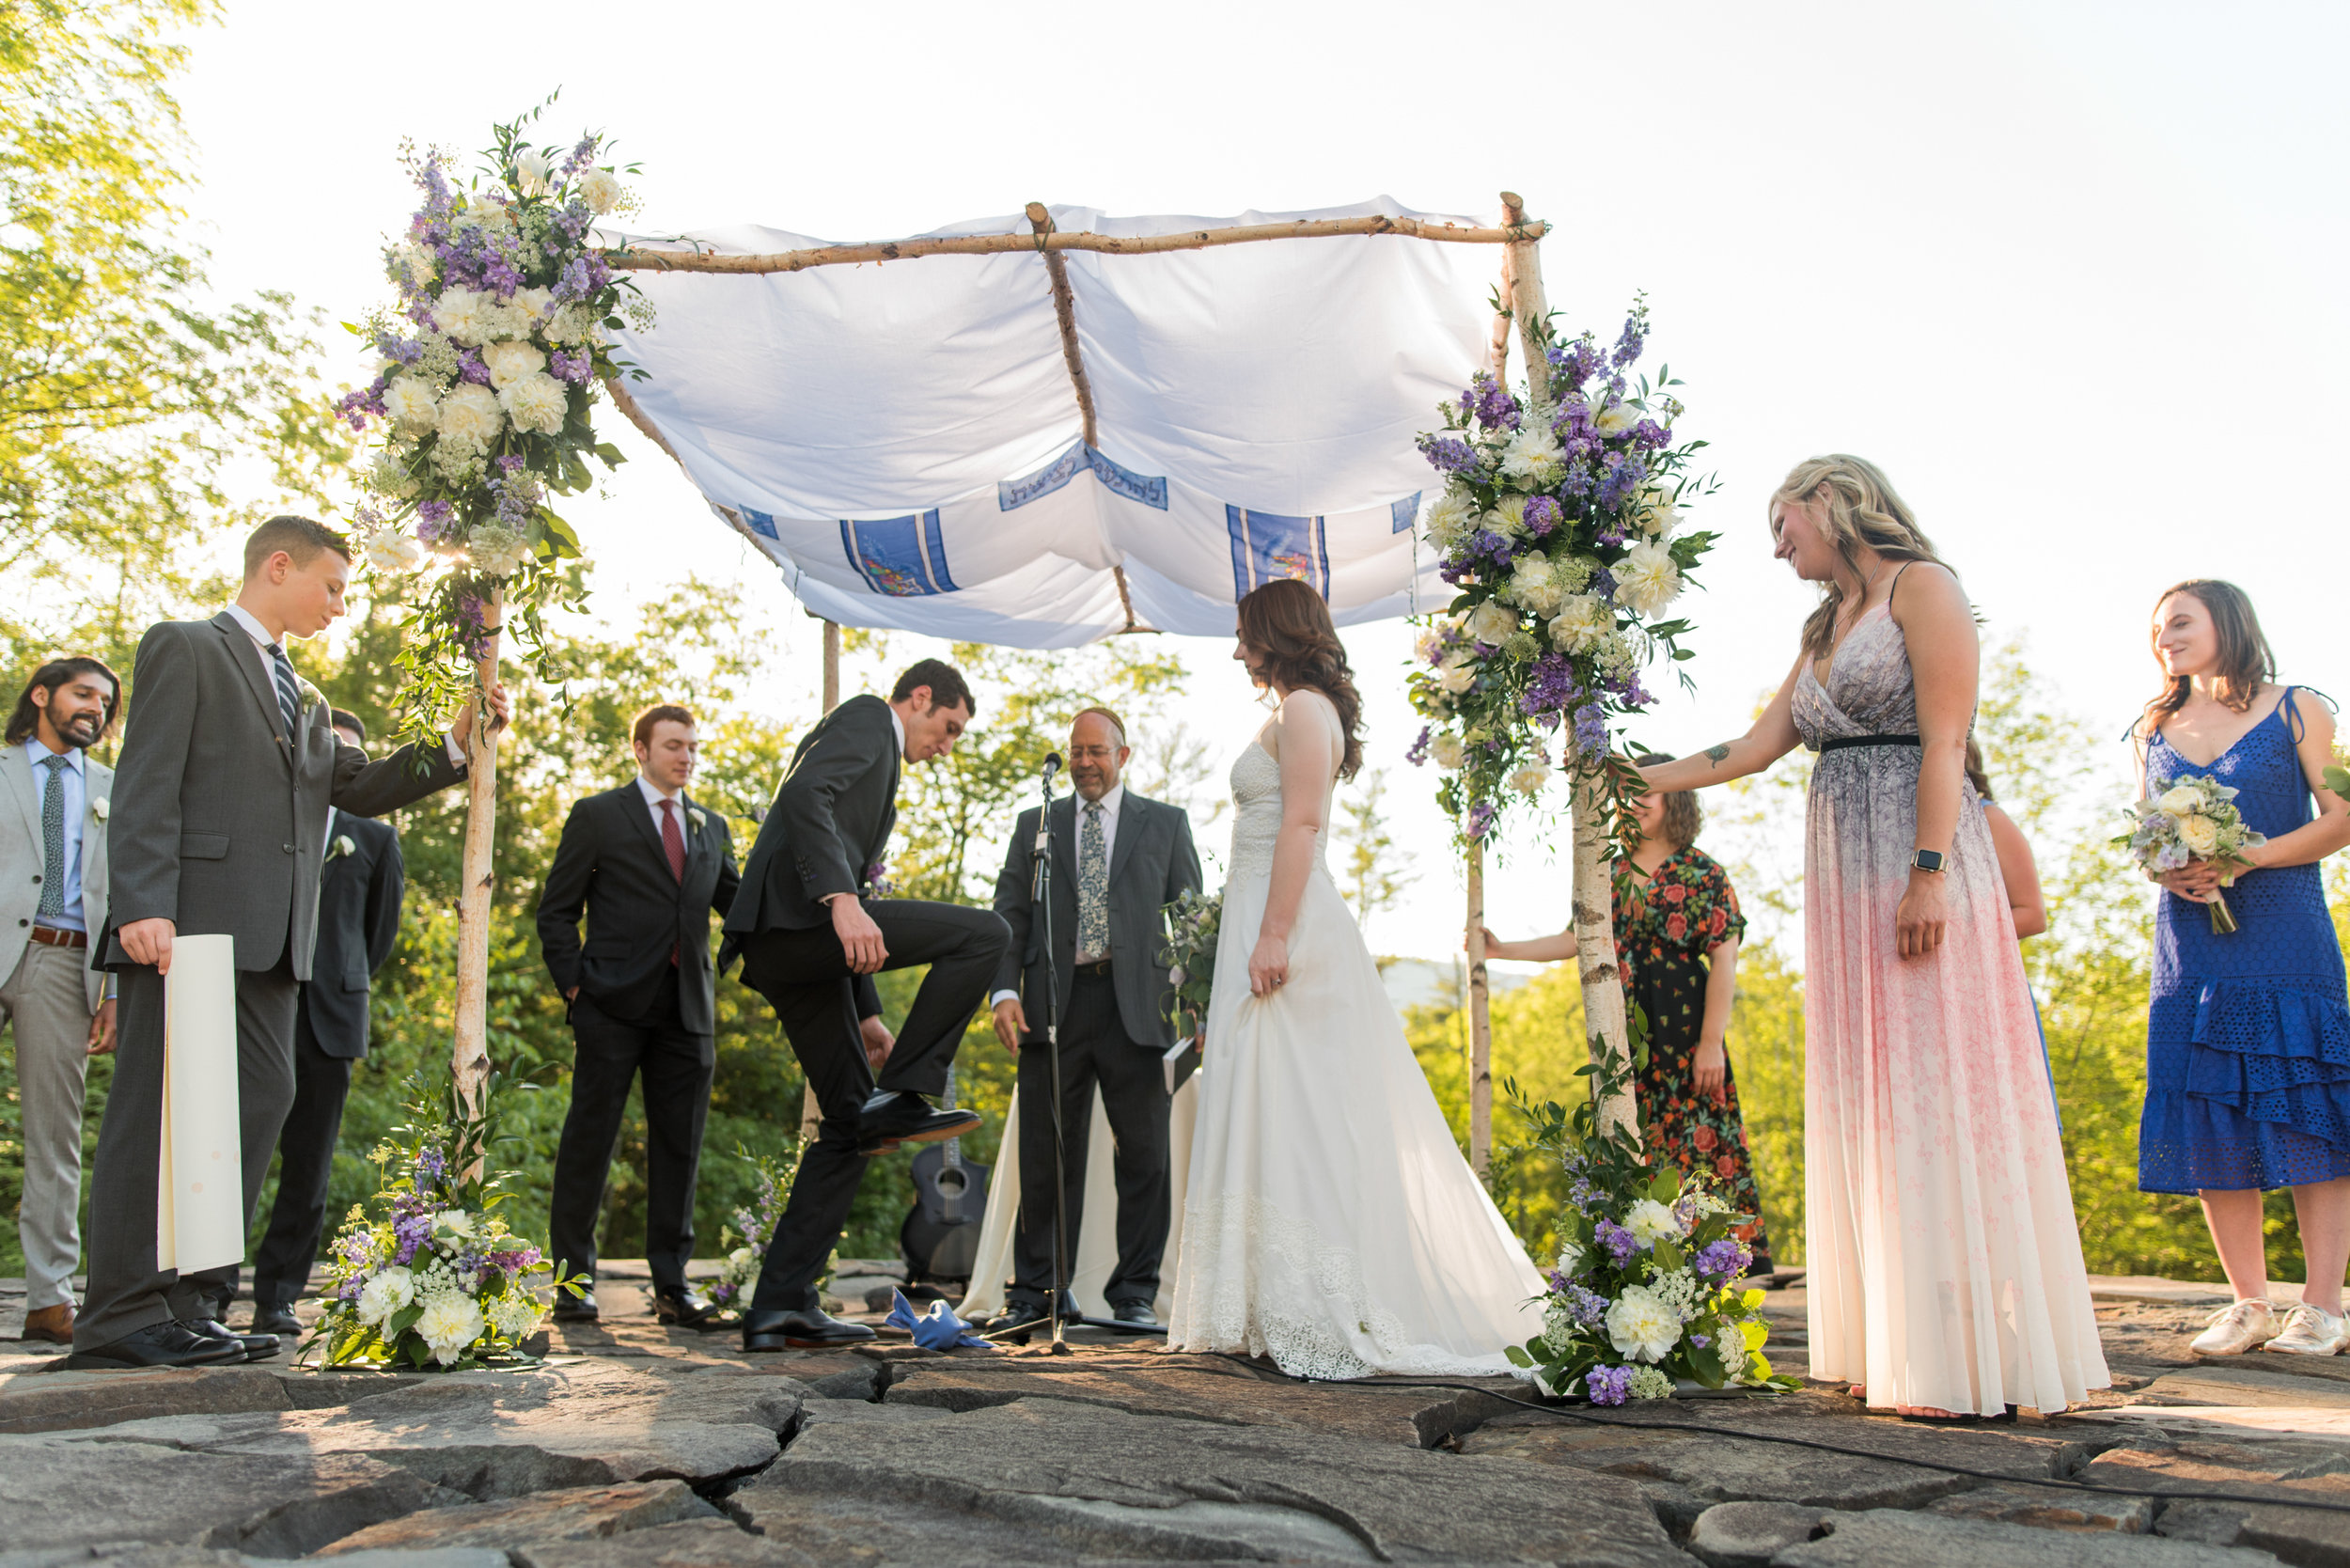 Stefy Hilmer Photography-breaking of the glass, jewish ceremony.jpg